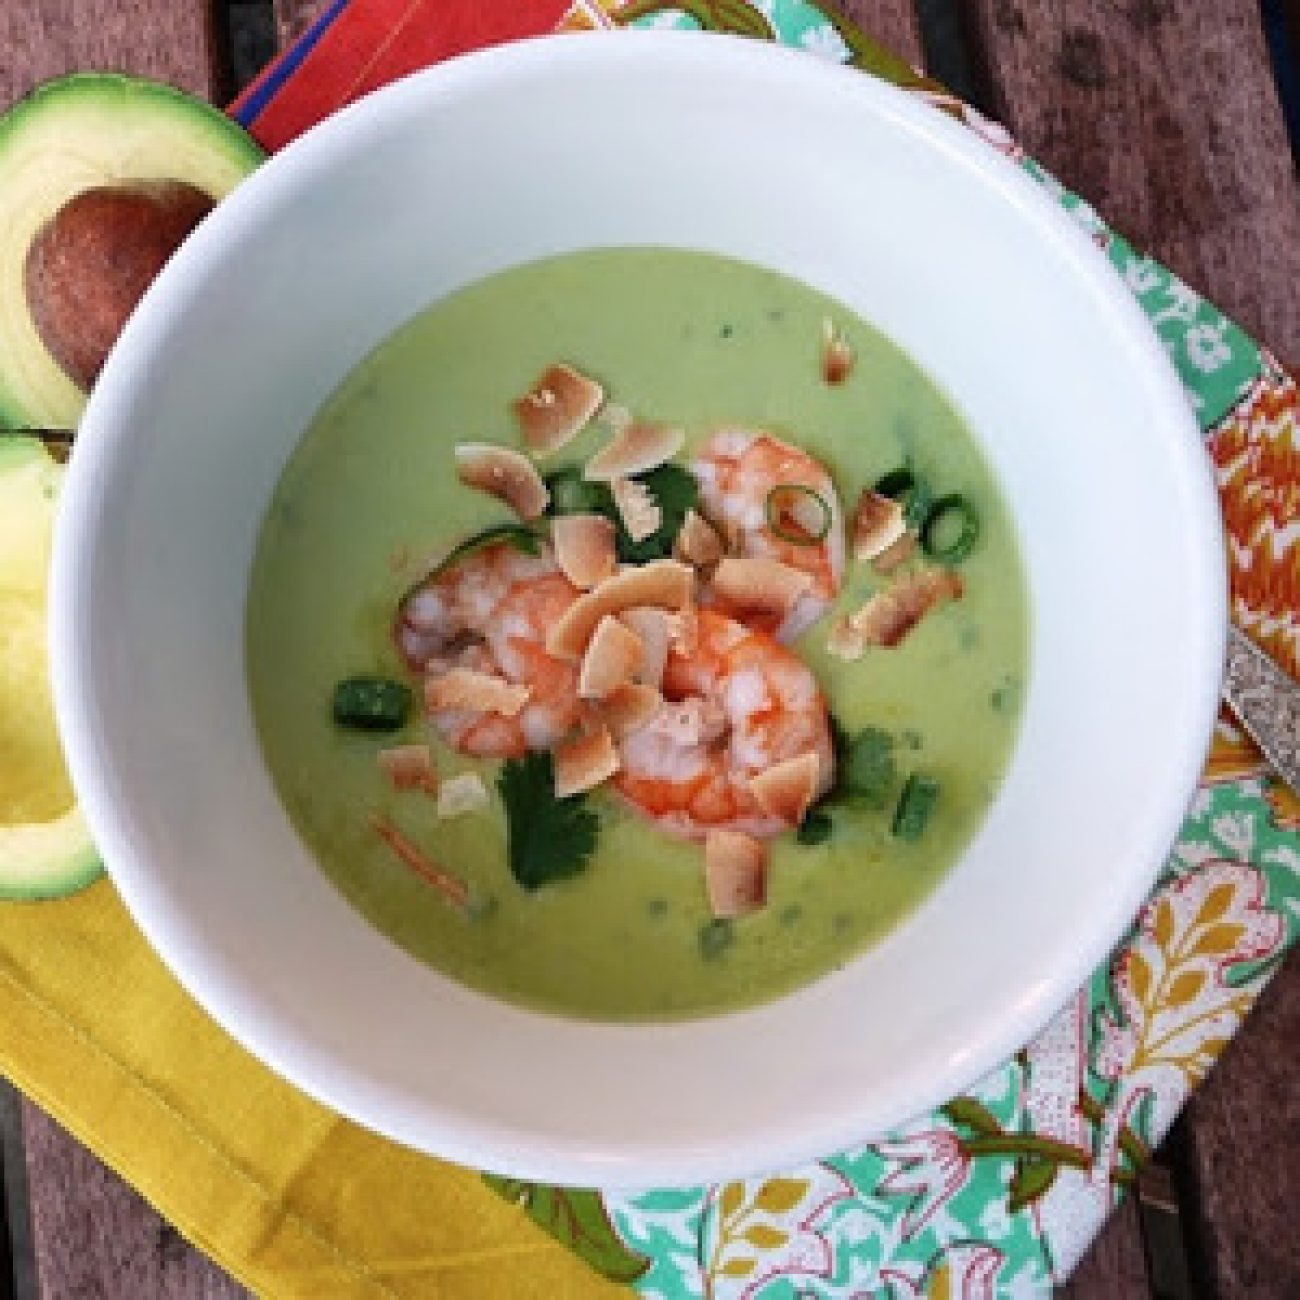 Chilled Thai-Inspired Creamy Avocado Coconut Soup with Poached Shrimp recipes